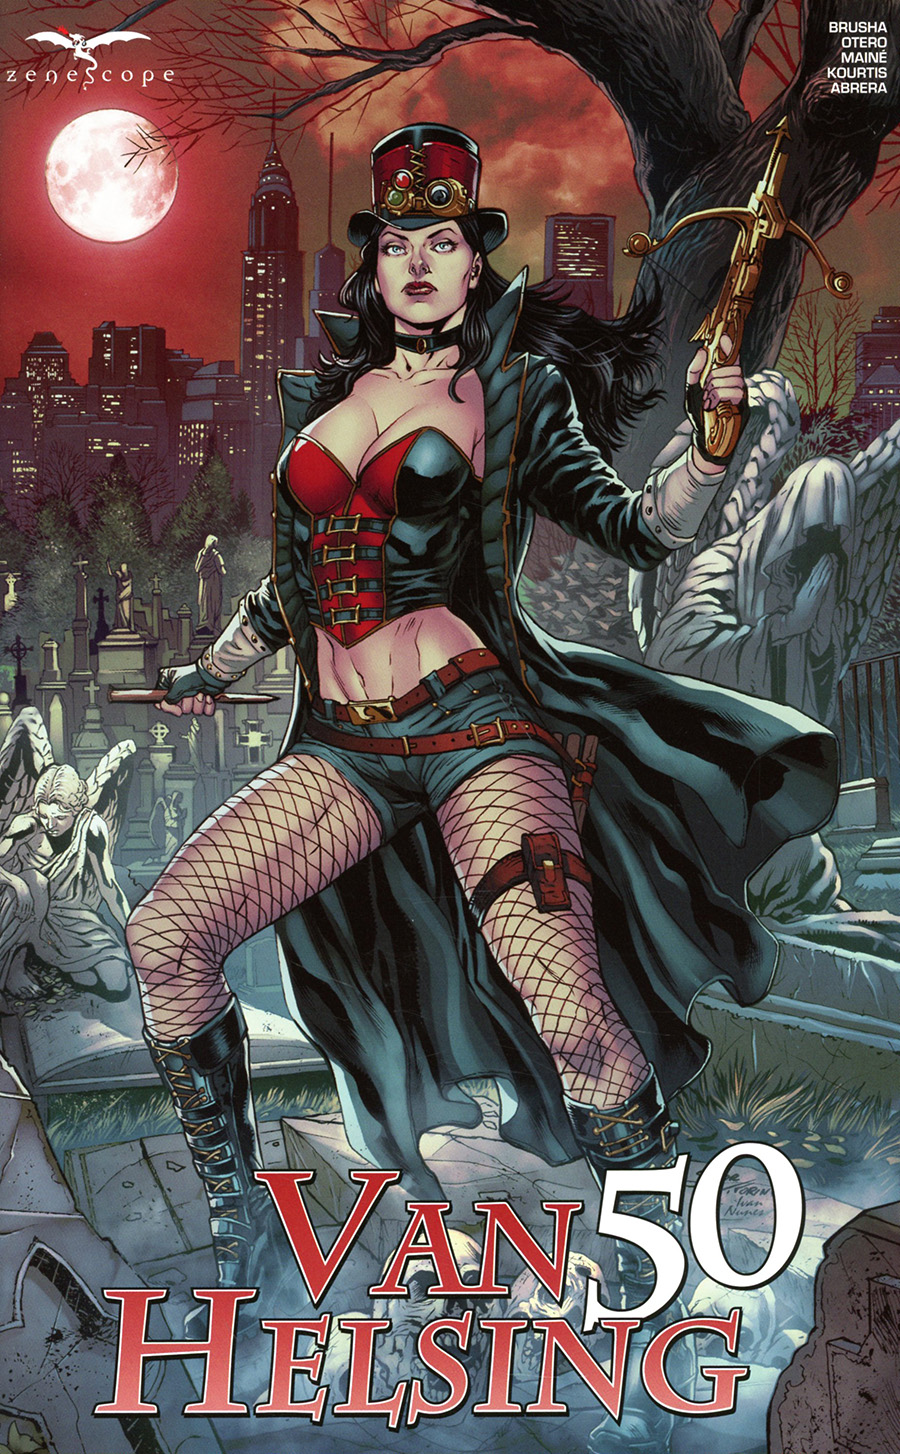 Grimm Fairy Tales Presents Van Helsing #50 Cover A Igor Vitorino